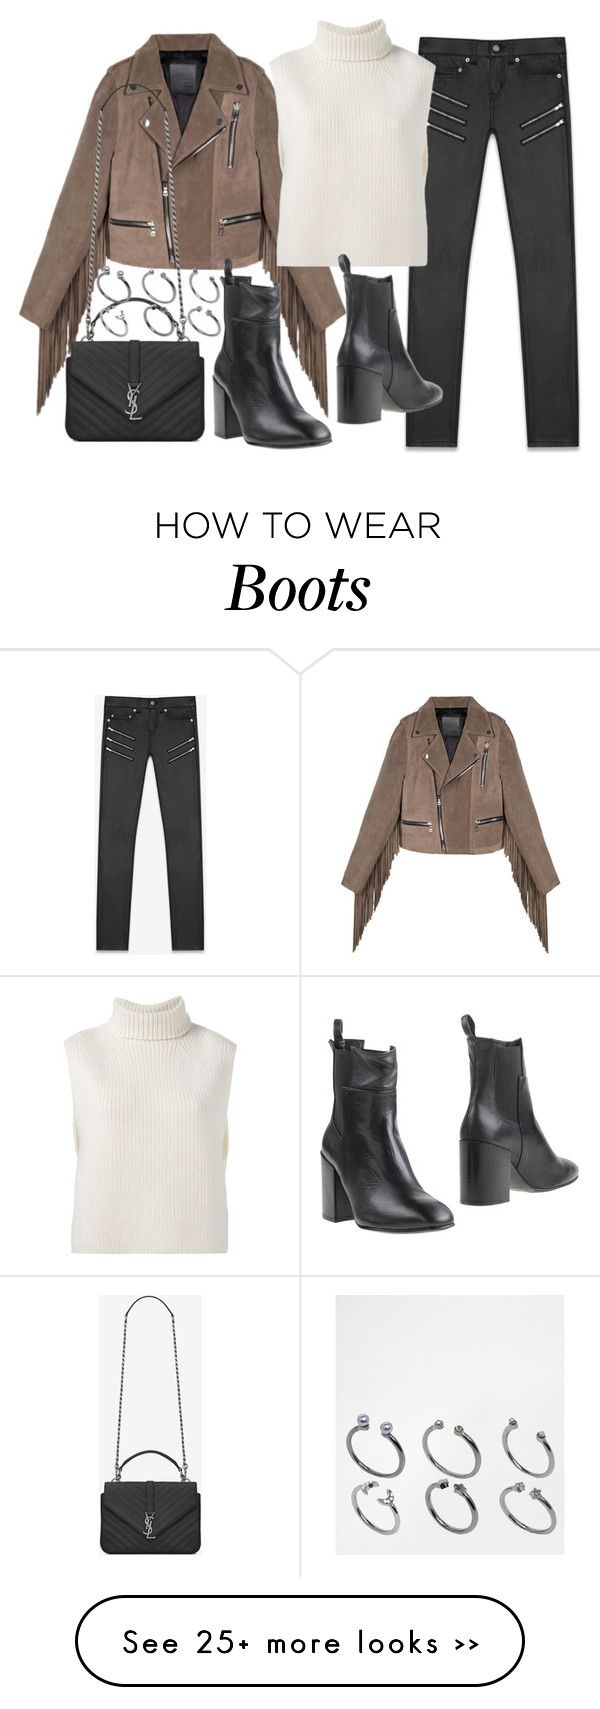 """Untitled #18621"" by florencia95 on Polyvore"